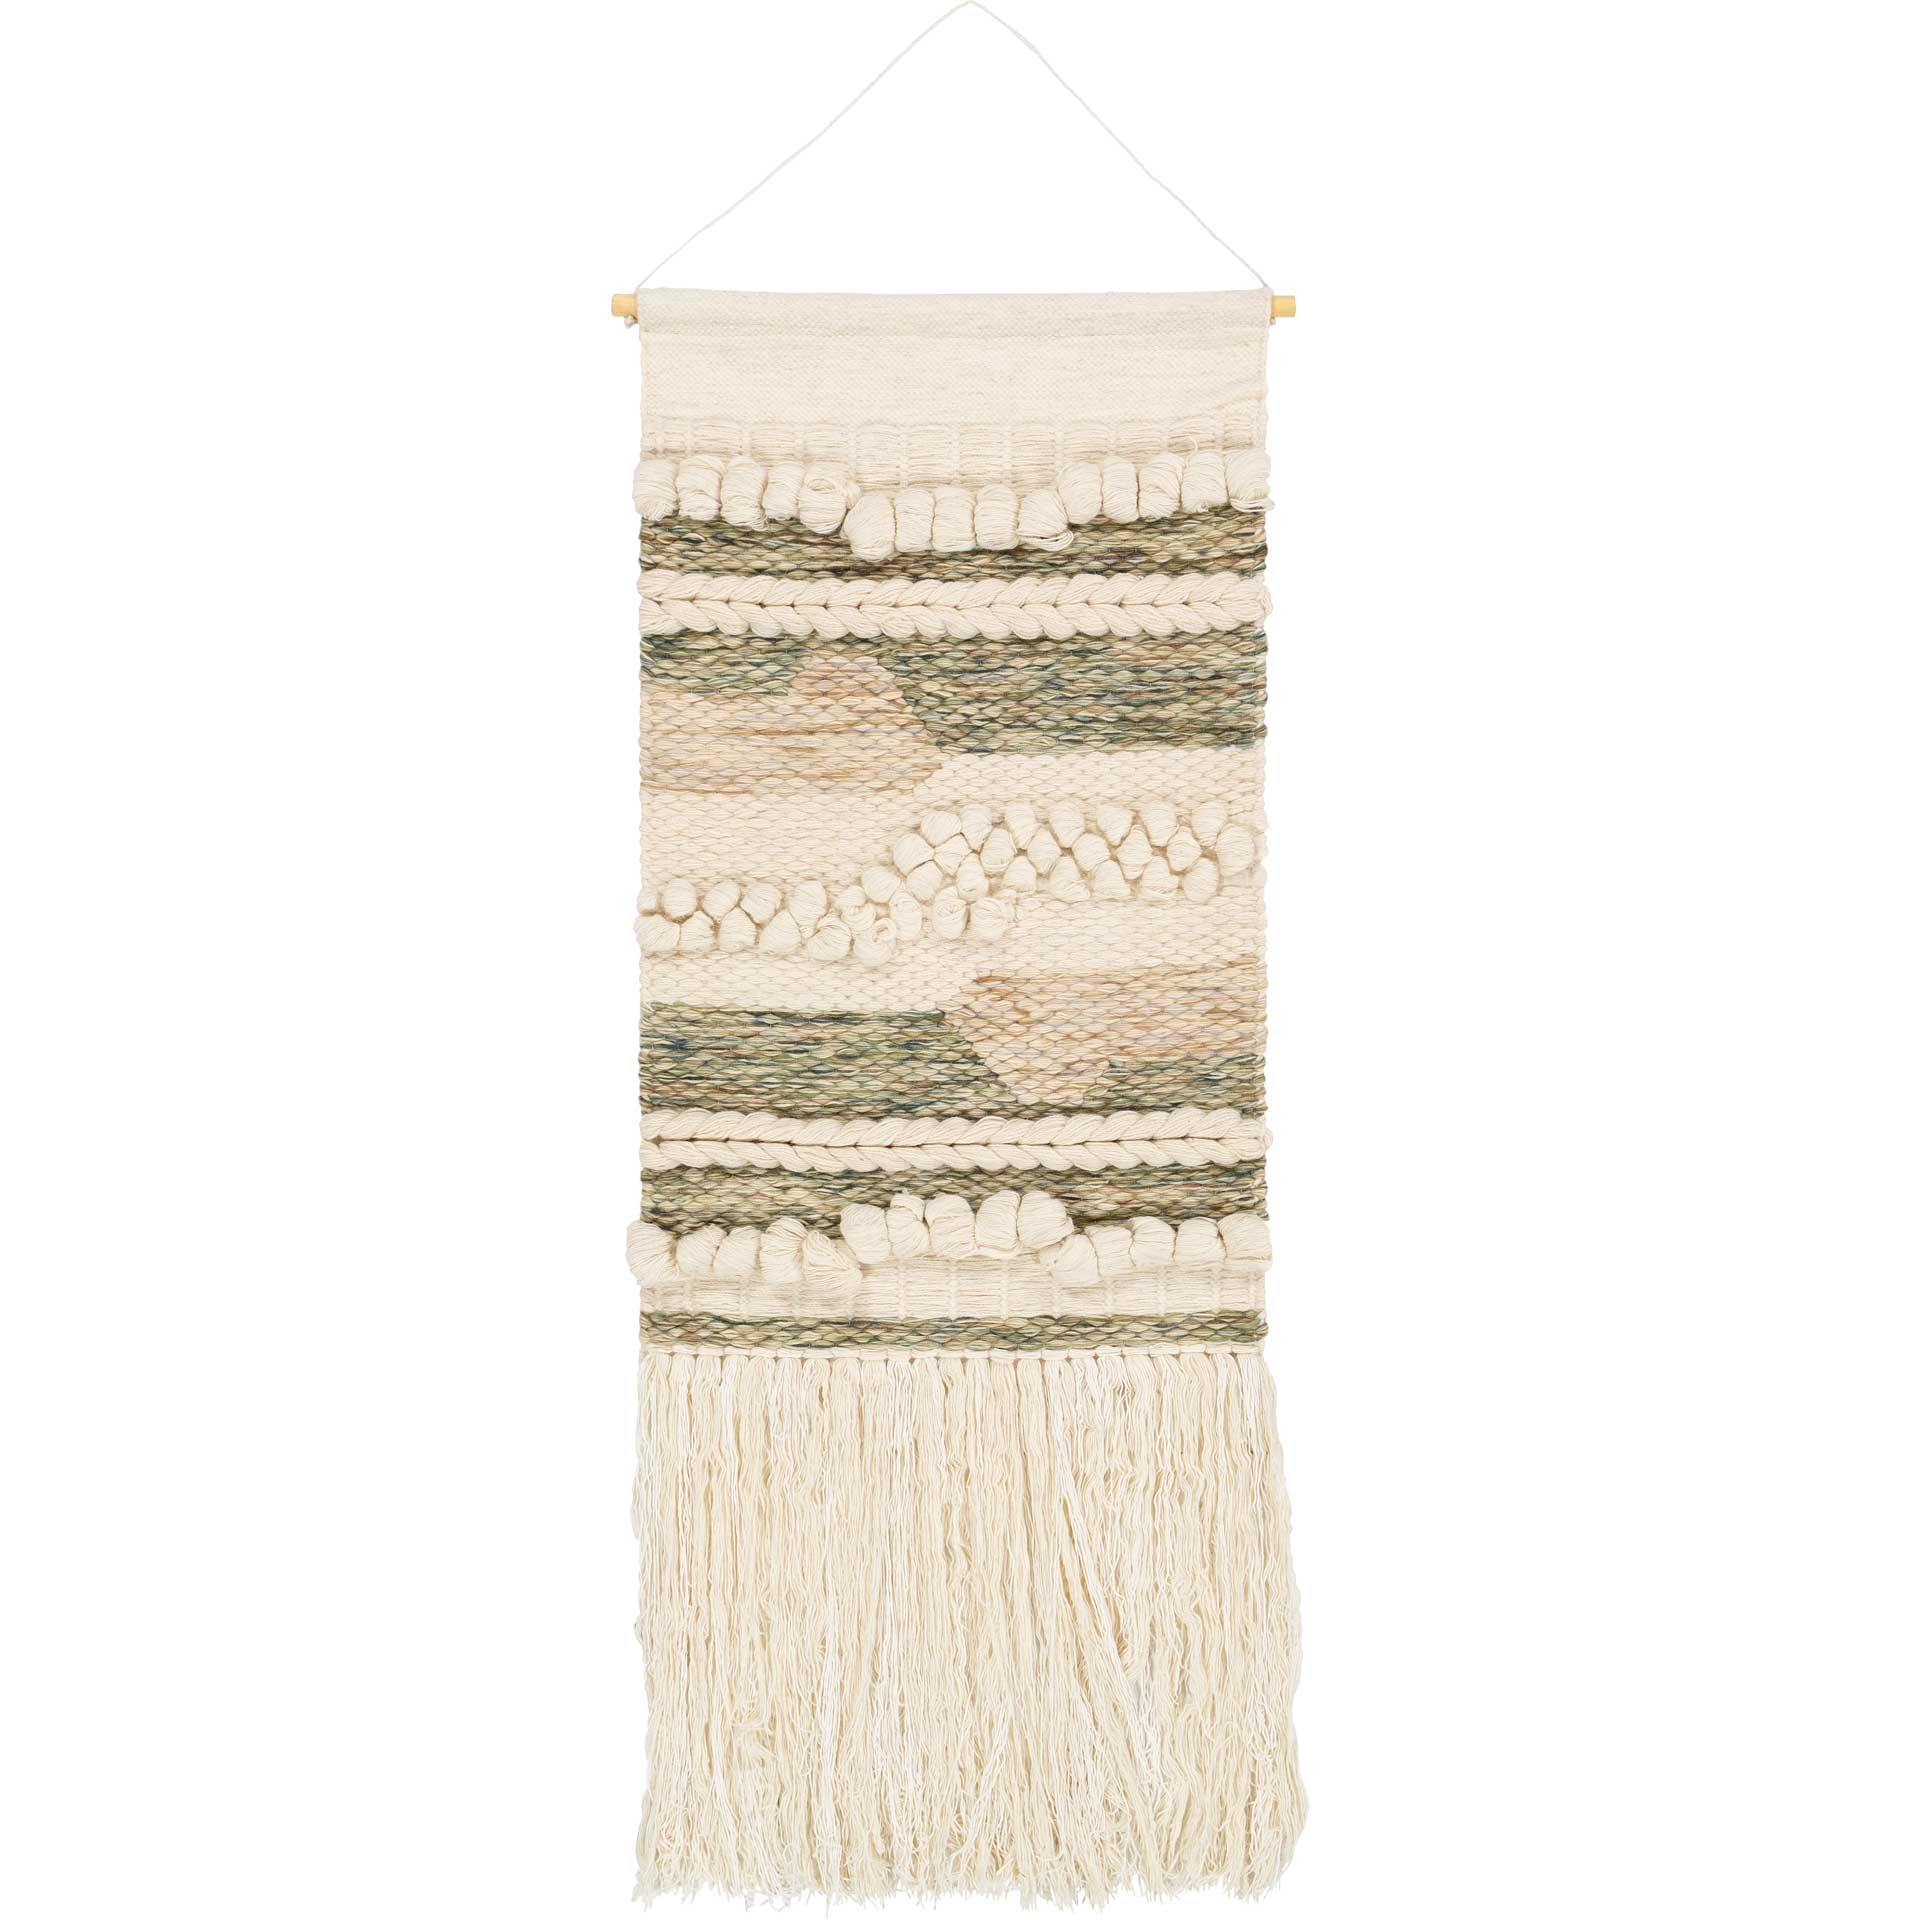 Ariyah Wall Hanging Cream/Olive/Teal